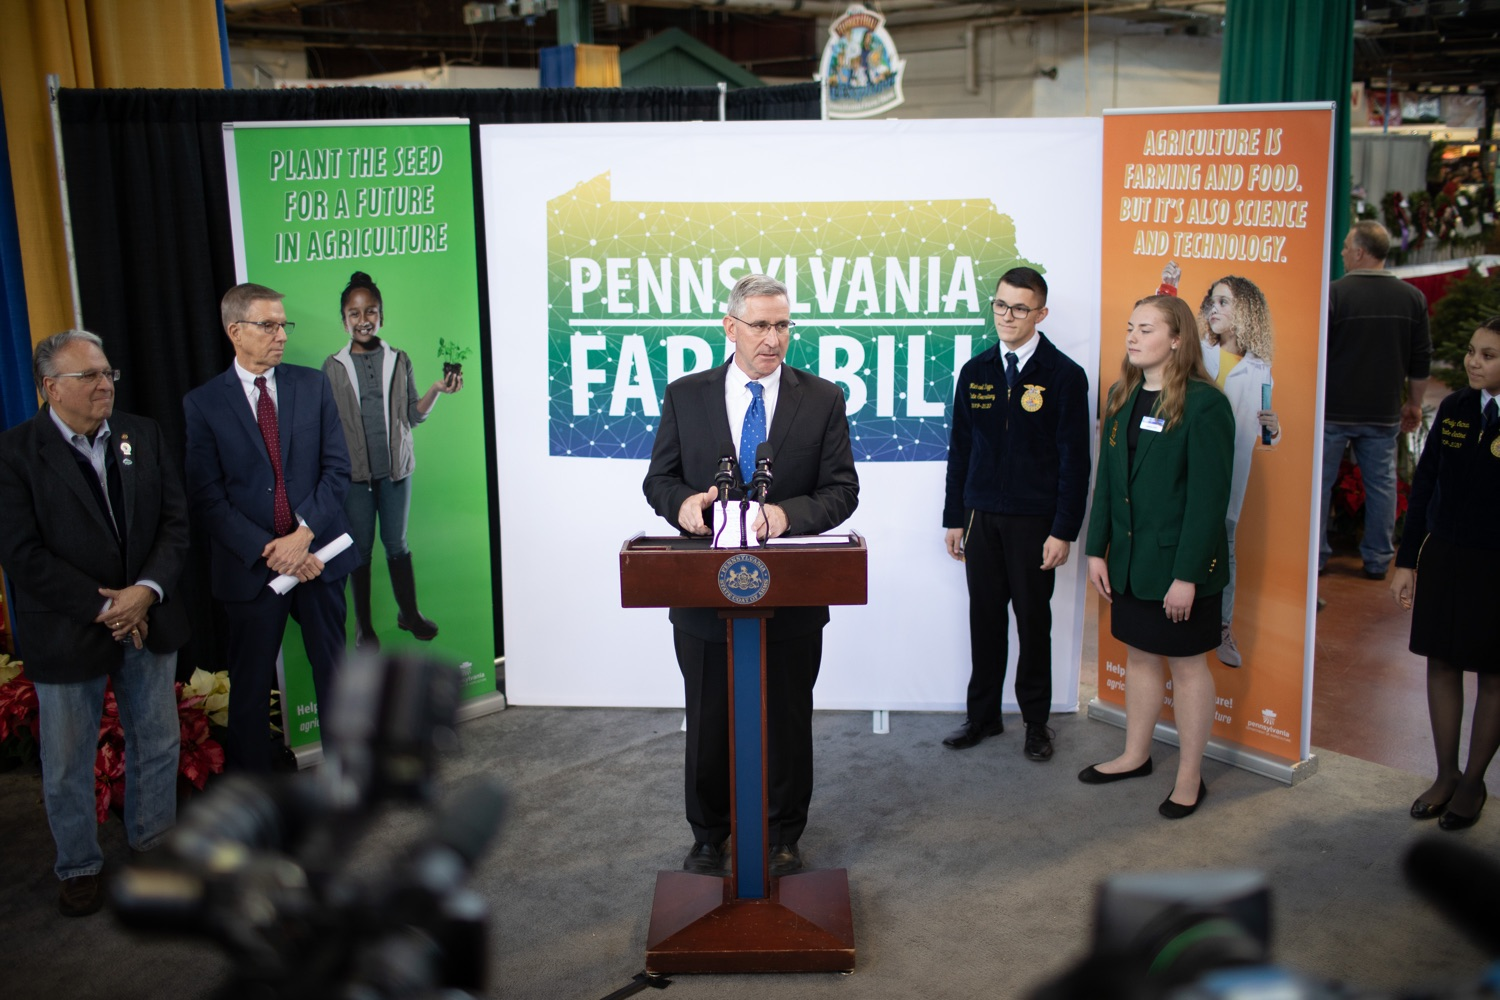 """<a href=""""http://filesource.abacast.com/commonwealthofpa/photo/17649_agric_youth_grant_farm_bill_dz_002.jpg"""" target=""""_blank"""">⇣Download Photo<br></a>Agriculture Secretary Russell Redding speaking at the announcement. Governor Tom Wolf today announced the approval of $500,000 in Ag and Youth Grants to fund 55 projects that will improve access to agriculture education in the commonwealth, with a goal of addressing the looming 75,000 workforce deficit Pennsylvanias agriculture industry faces in the coming decade. Harrisburg, PA  January 6, 2020"""